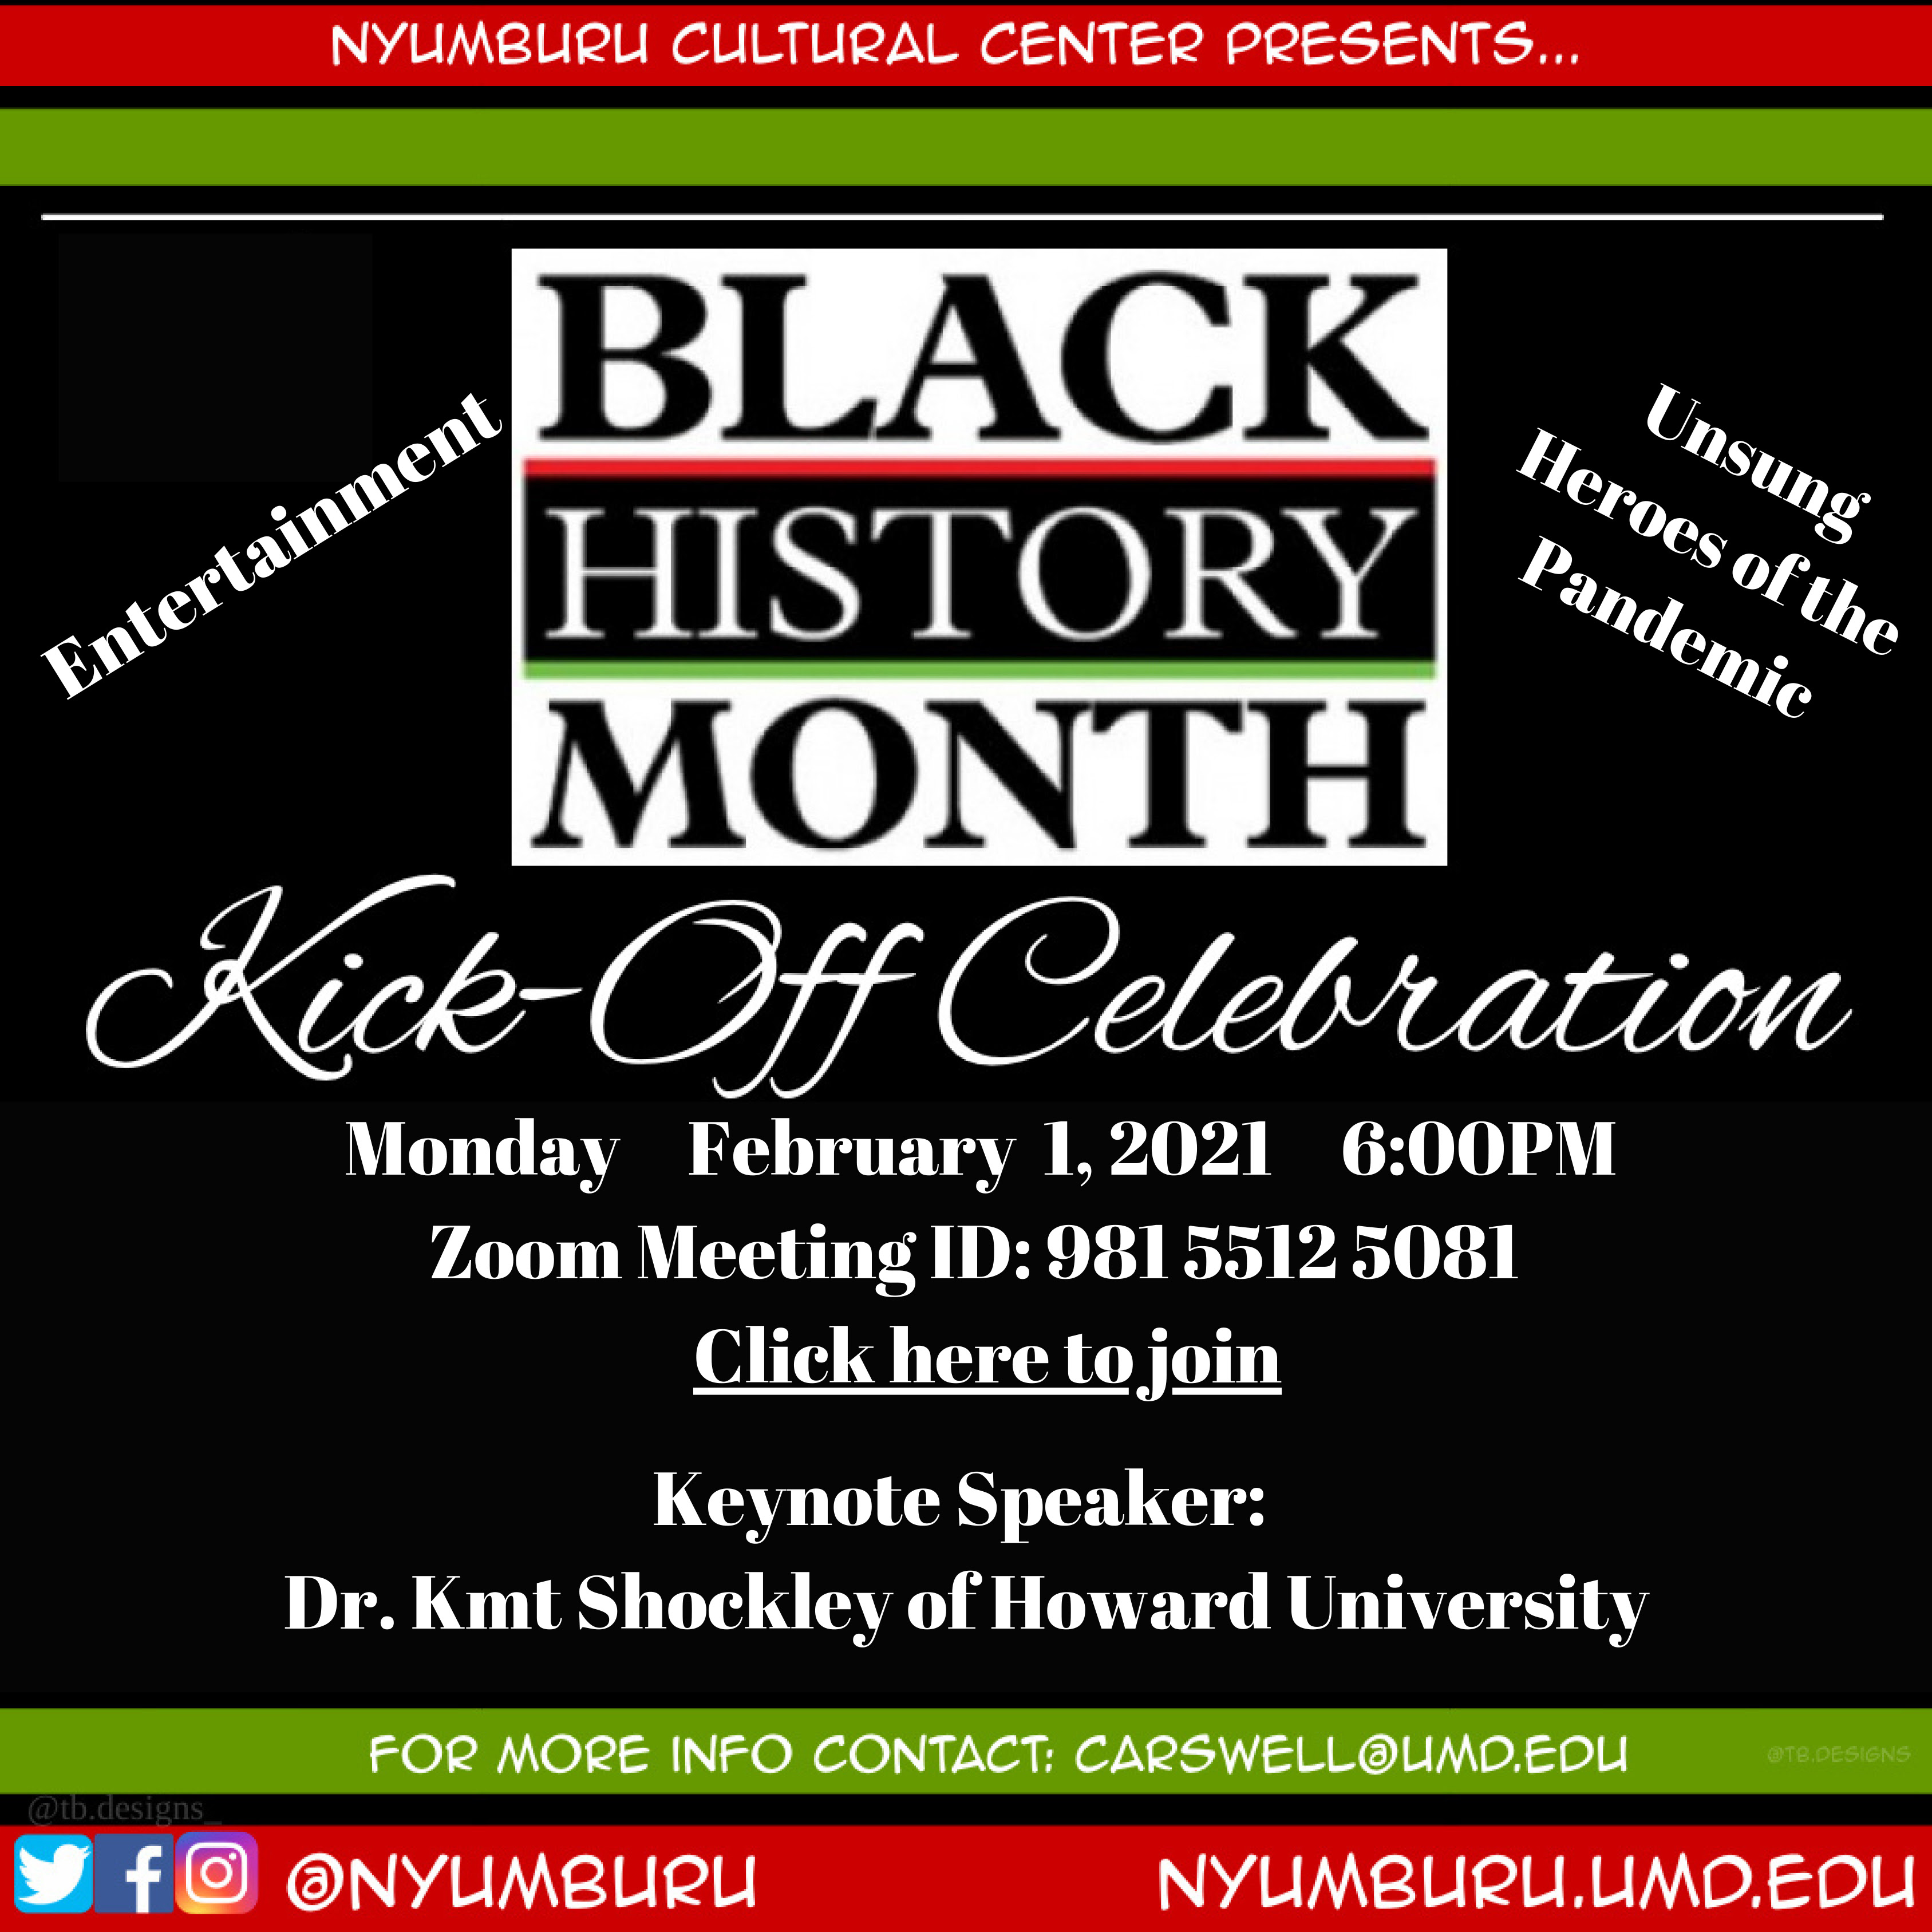 Text reads Nyumburu Cultural Center presents Black History Month Kick-off Celebration. Monday, February 1, 2021 6pm. Zoom meeting ID: 981 5512 5081. Keynote speaker: Dr. Kmt Shockley of Howard University. For more info contact carswell@umd.edu